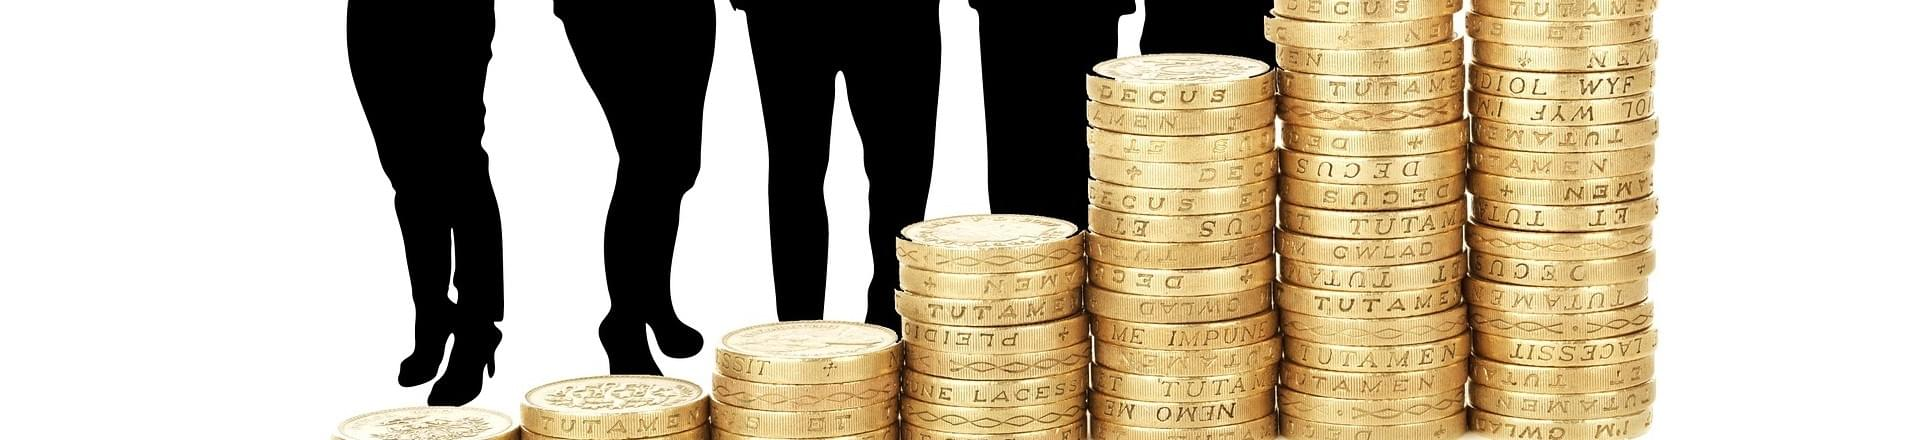 Businesses will have to reveal gender pay gap